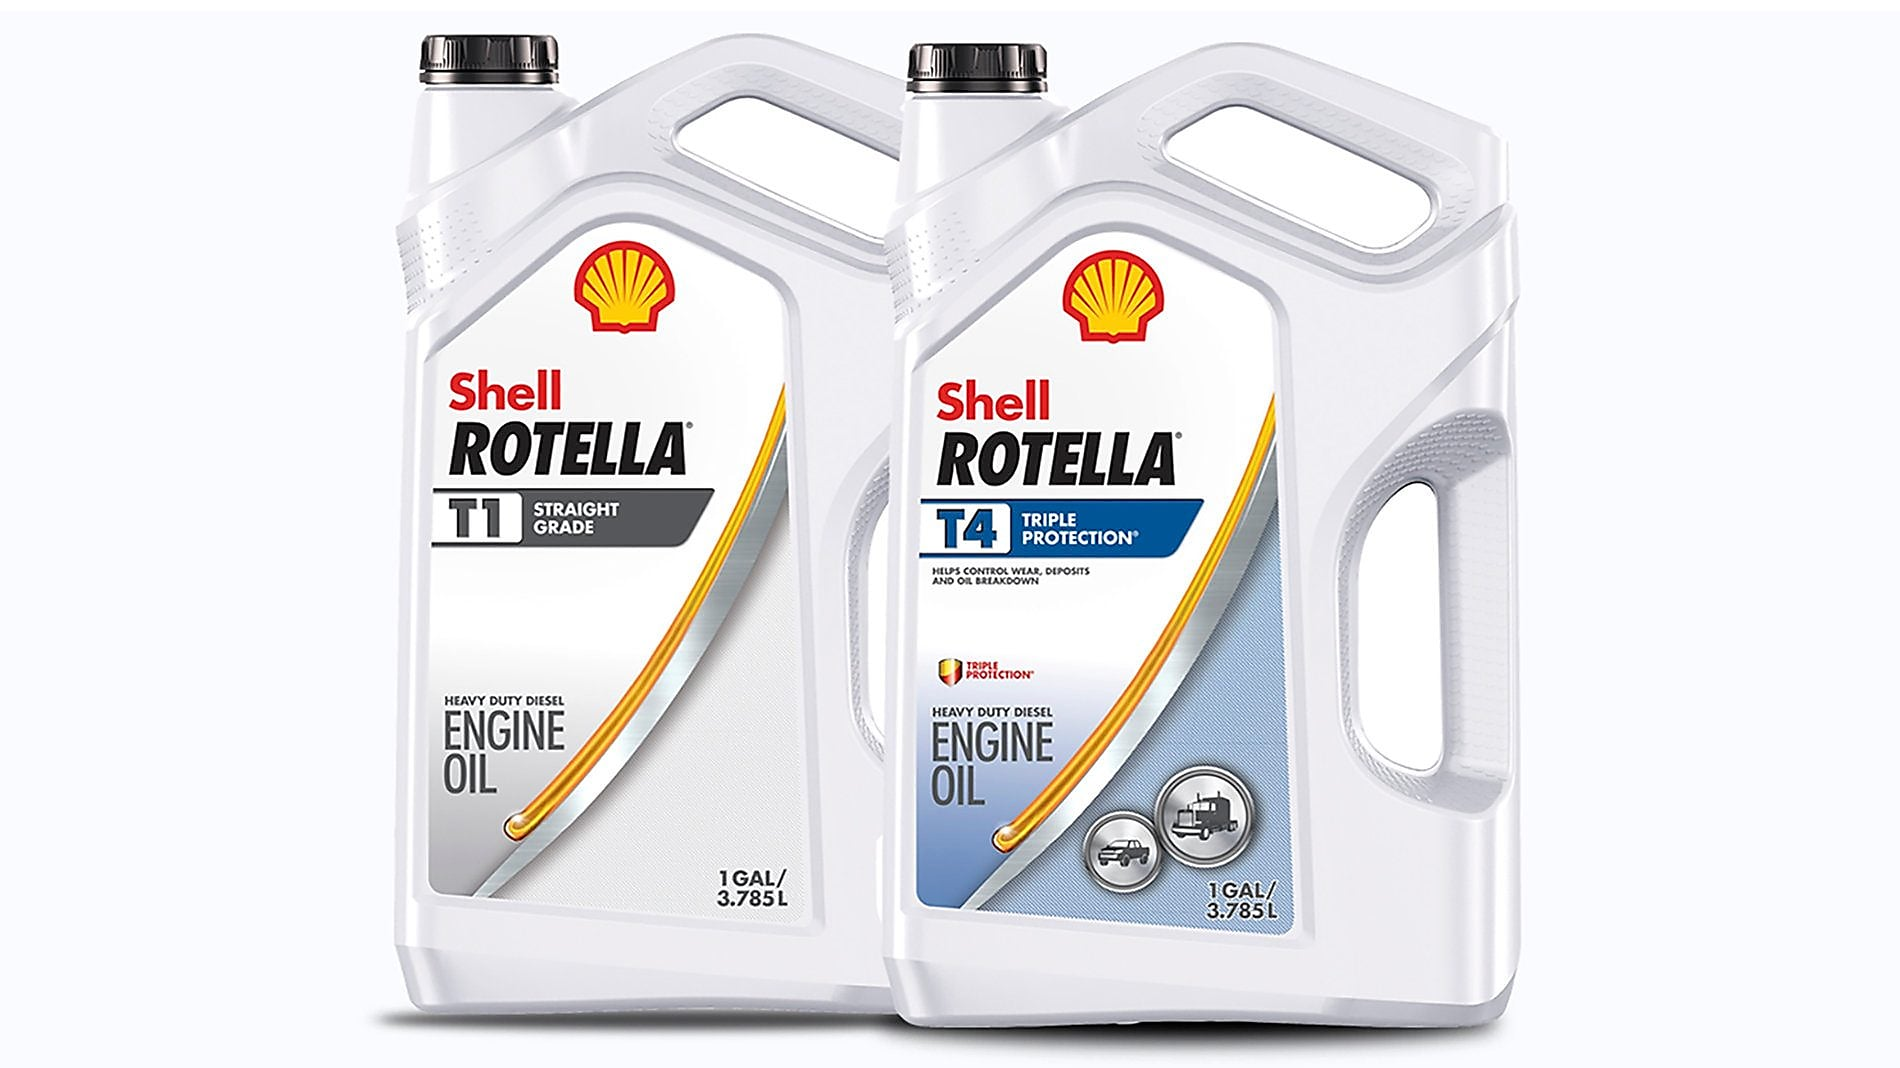 Shell Rotella T4 >> Conventional Oil Shell Rotella Shell Rotella